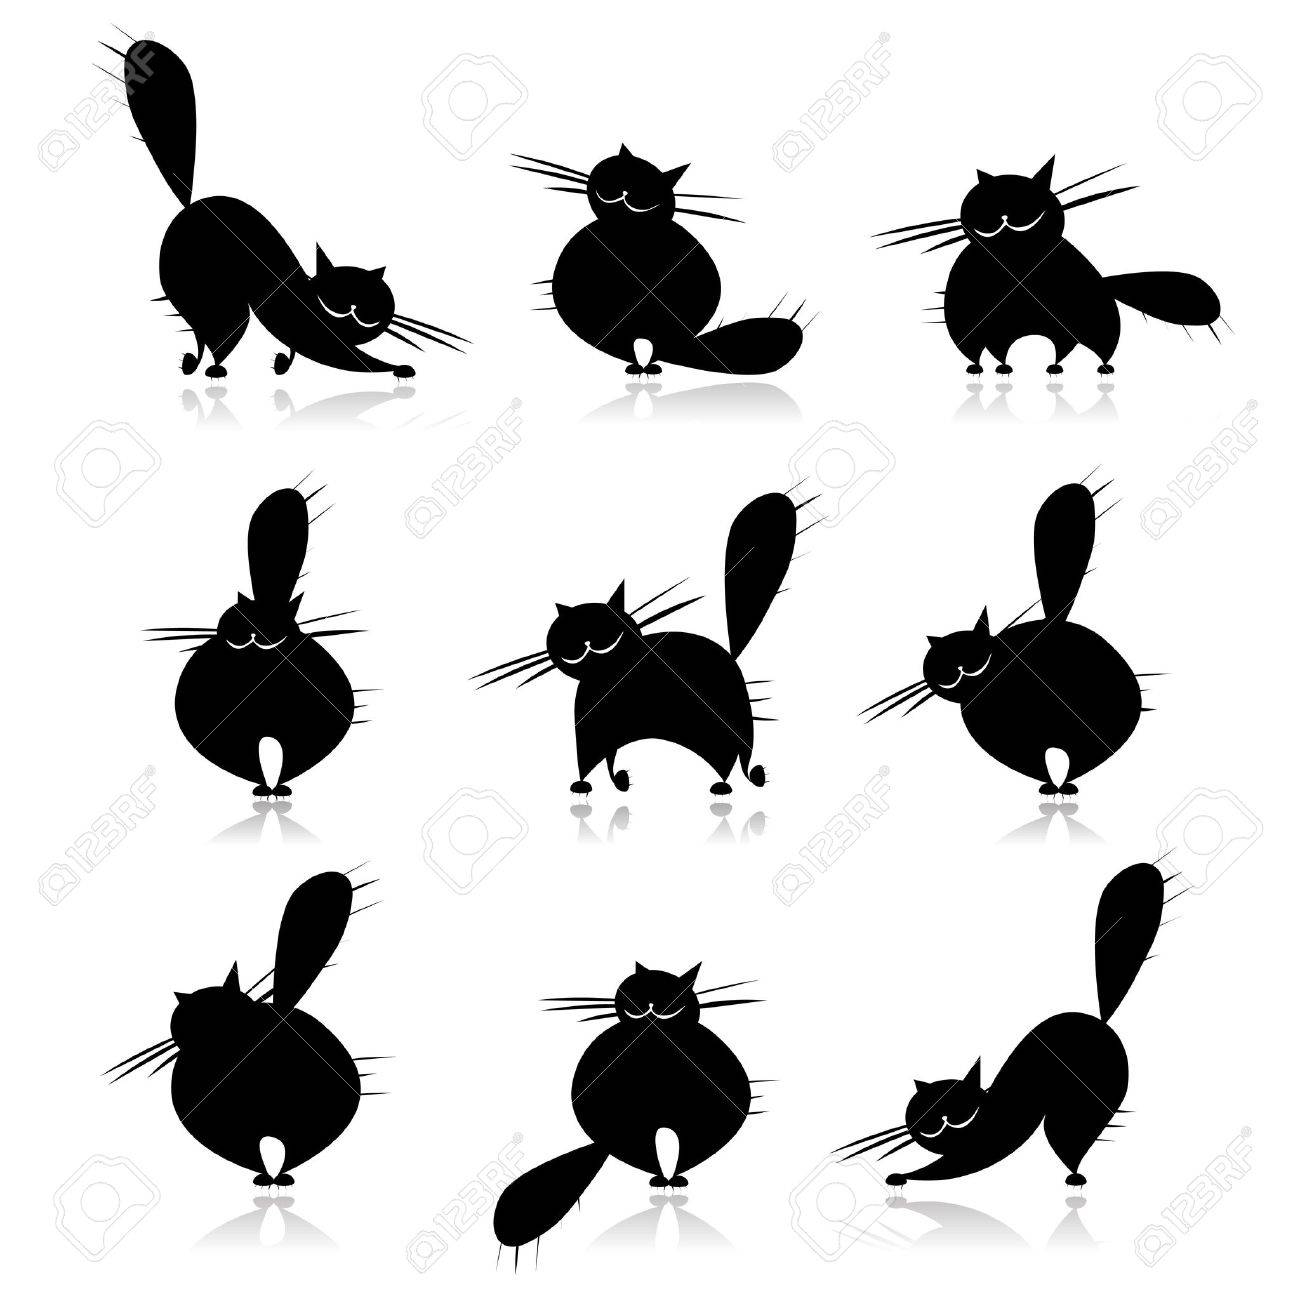 Funny black fat cats silhouettes for your design Stock Vector - 7715258